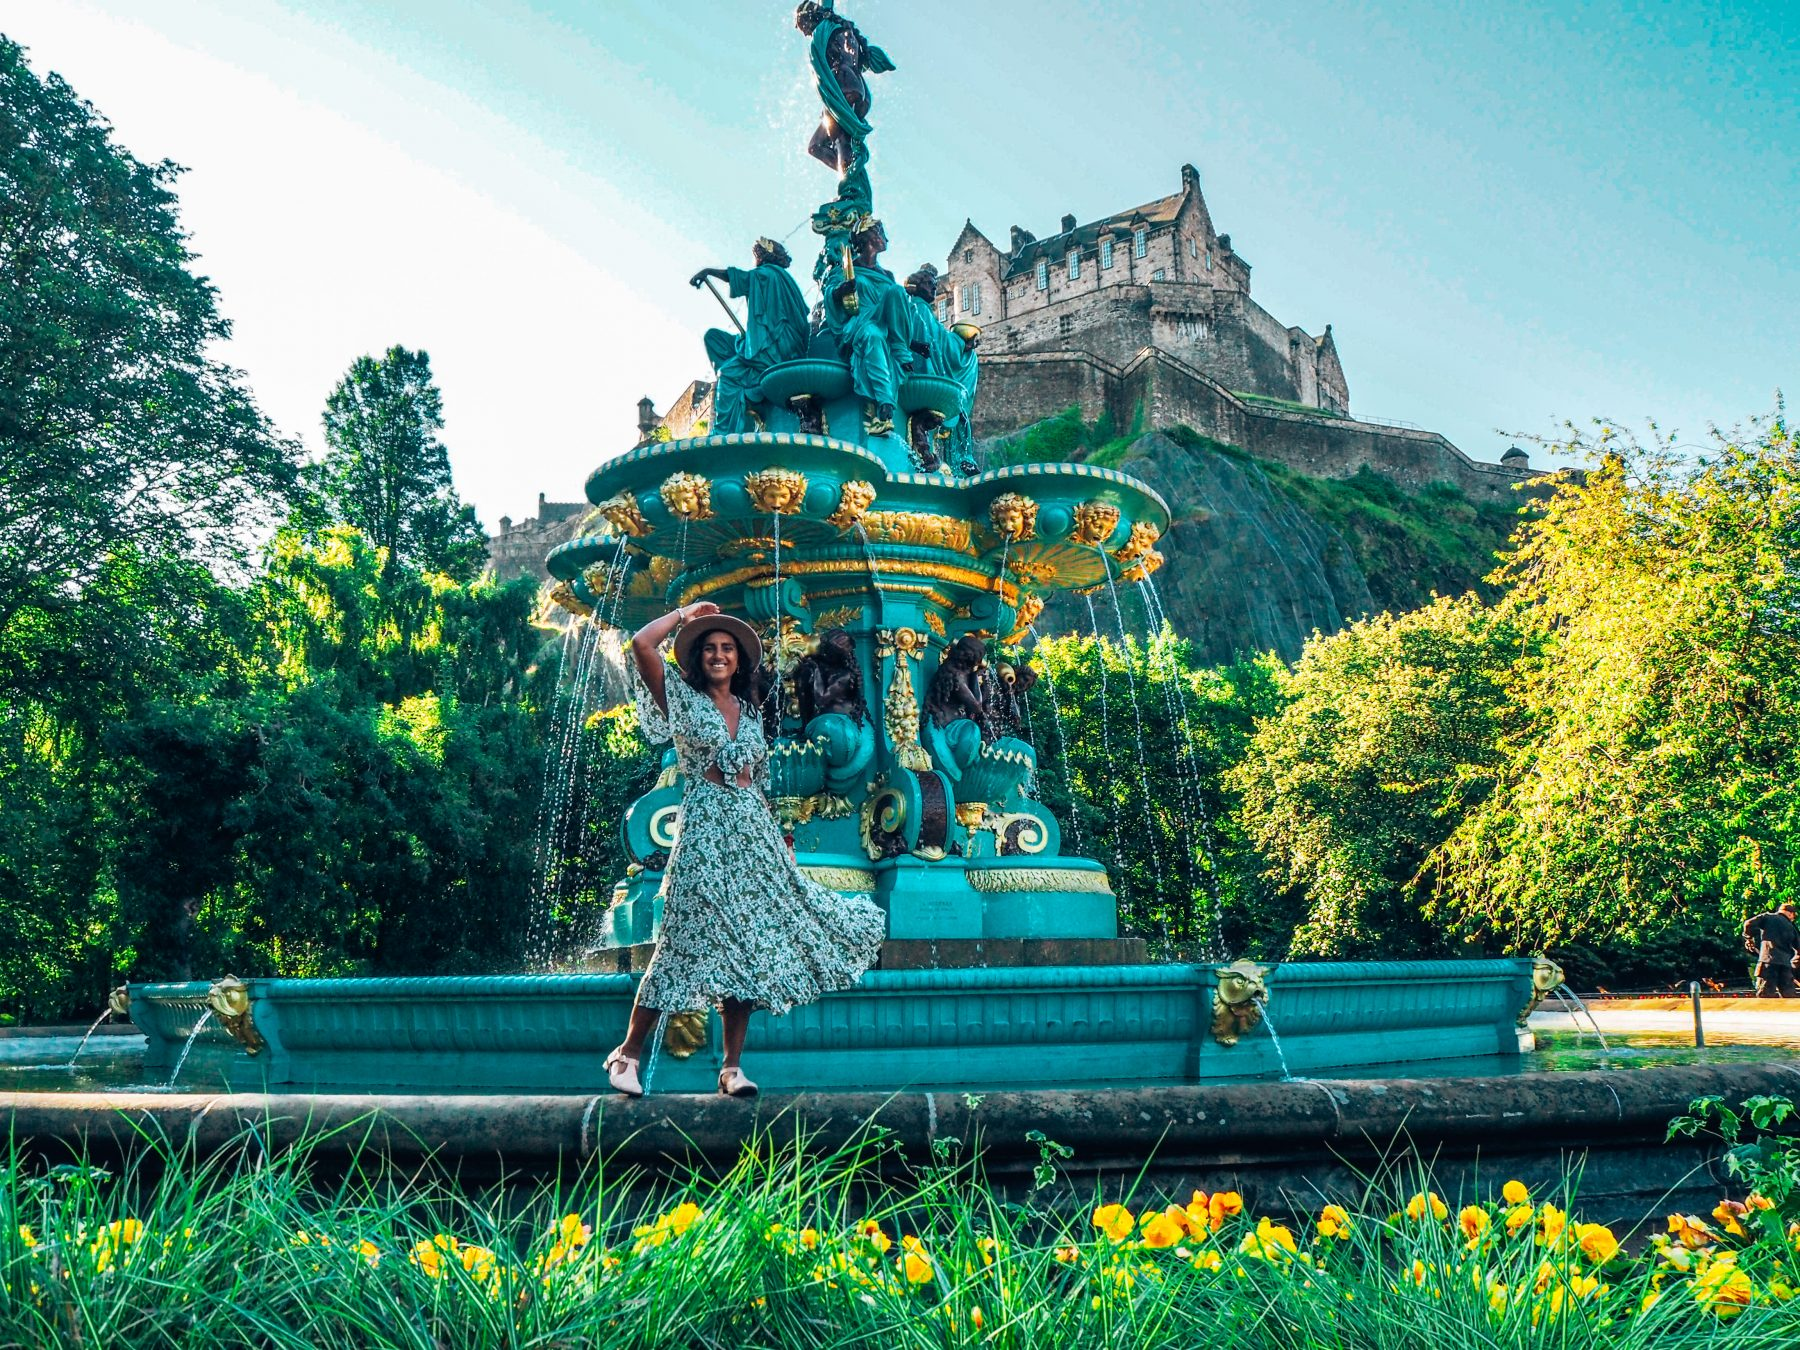 Scotland road trip, Lucy stands on Edinburgh fountain with view of Edinburgh castle